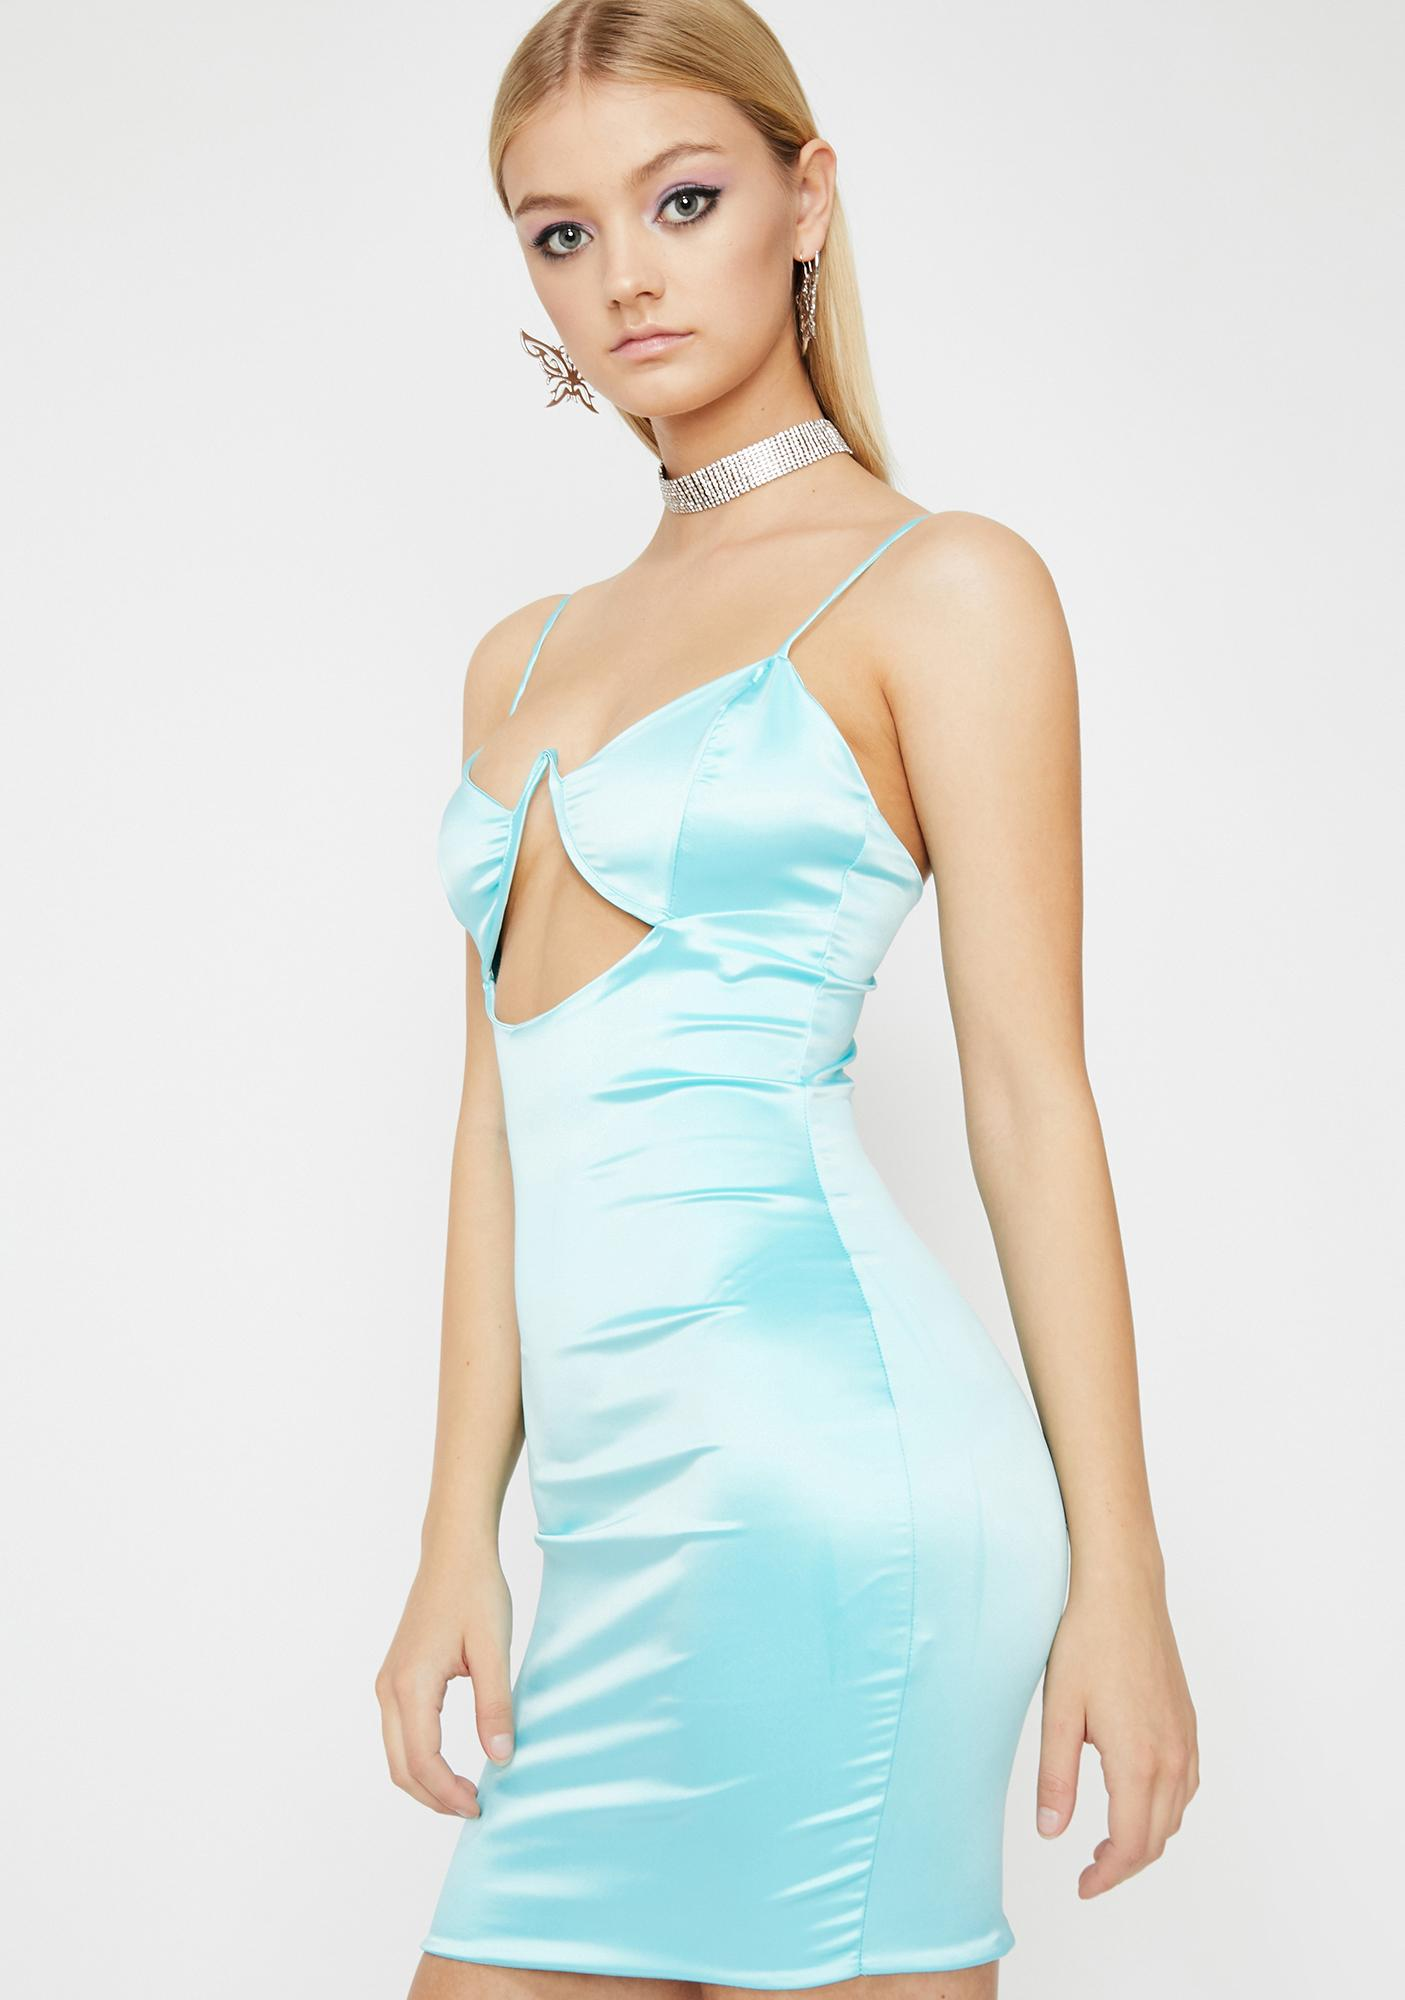 Next Level Plastic Underwire Dress